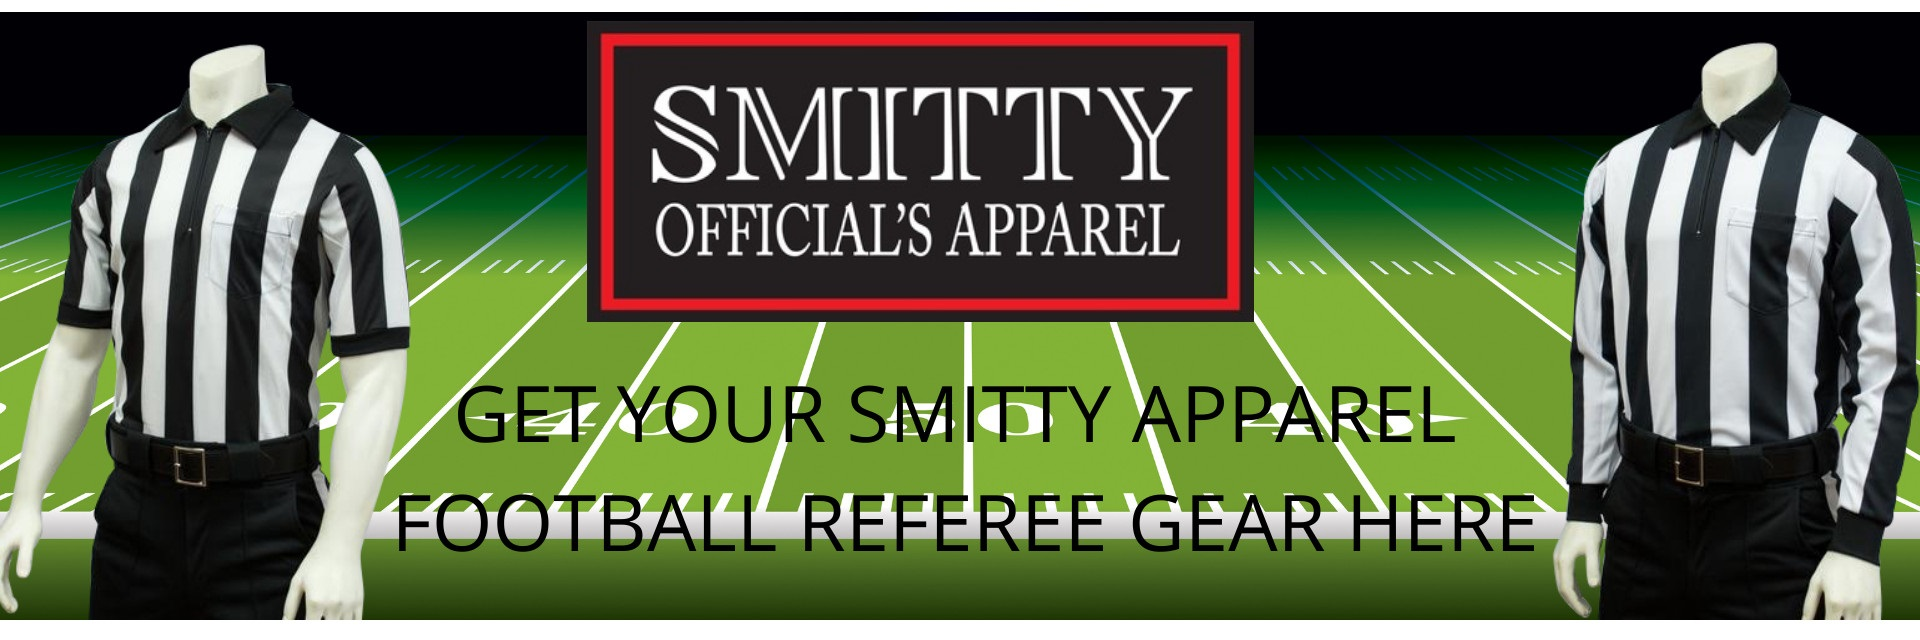 Referee Equipment | Umpire Equipment | Soccer Referee Apparel